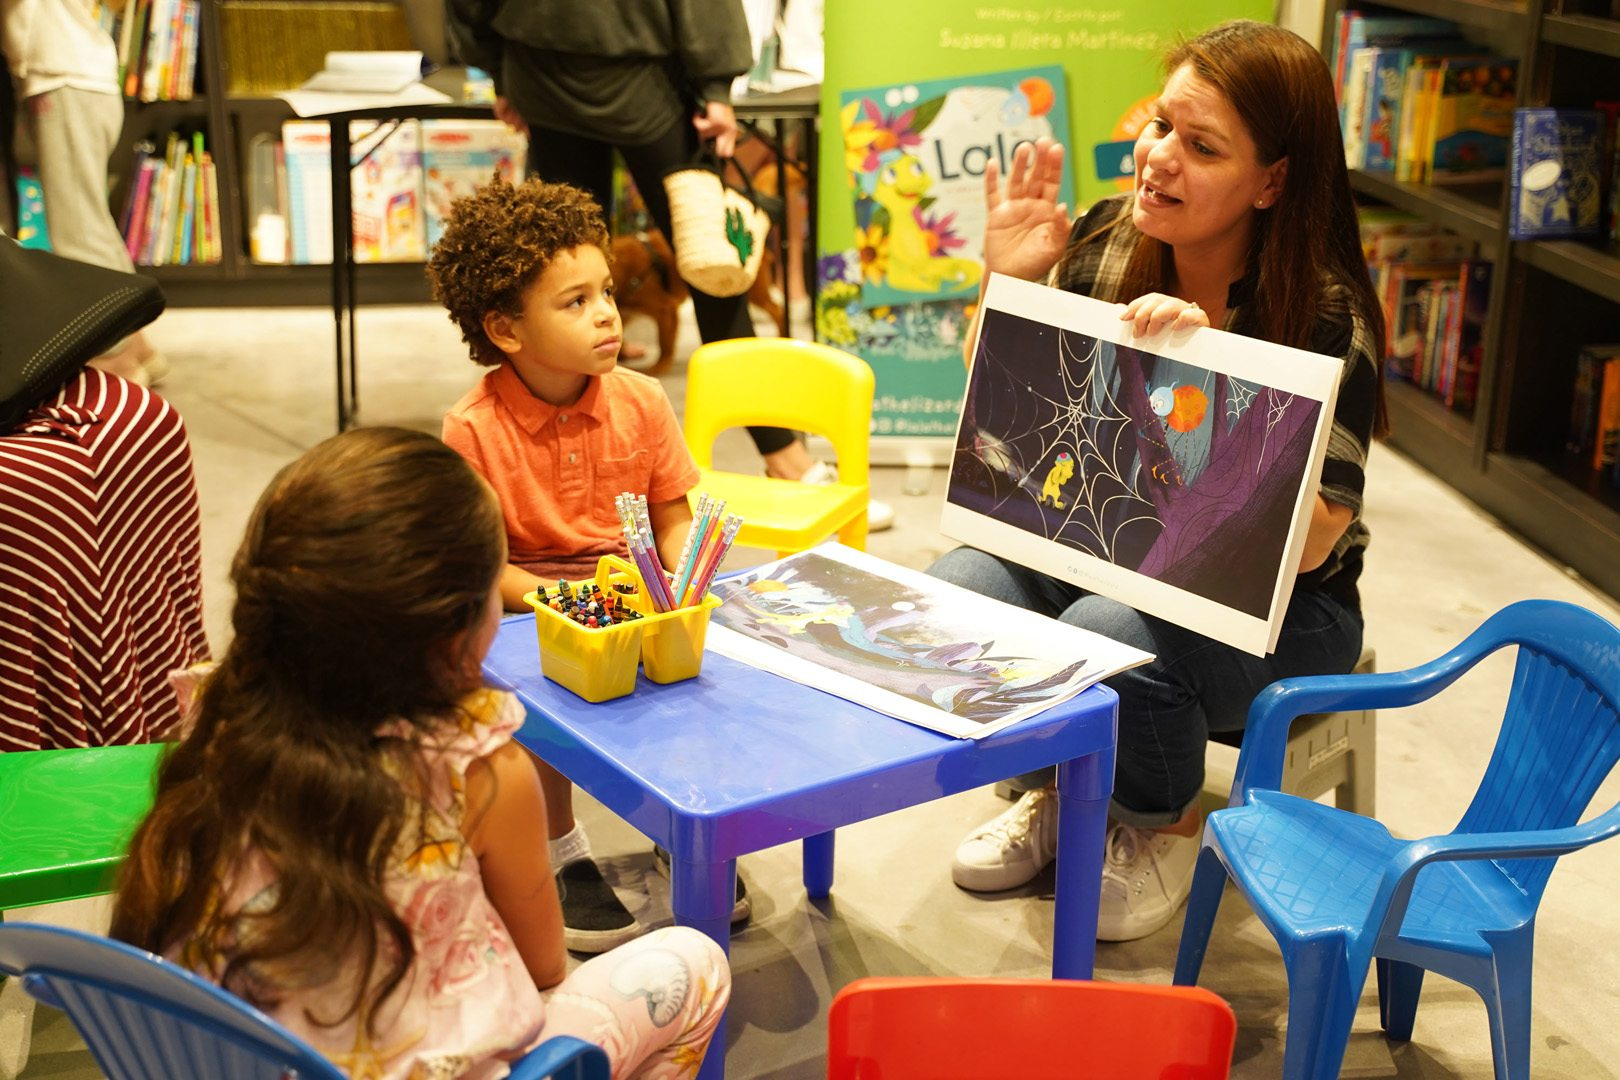 Lala the Lizard story-time at Books & Books Bal Harbour for ICE CREAM WE LOVE 2020